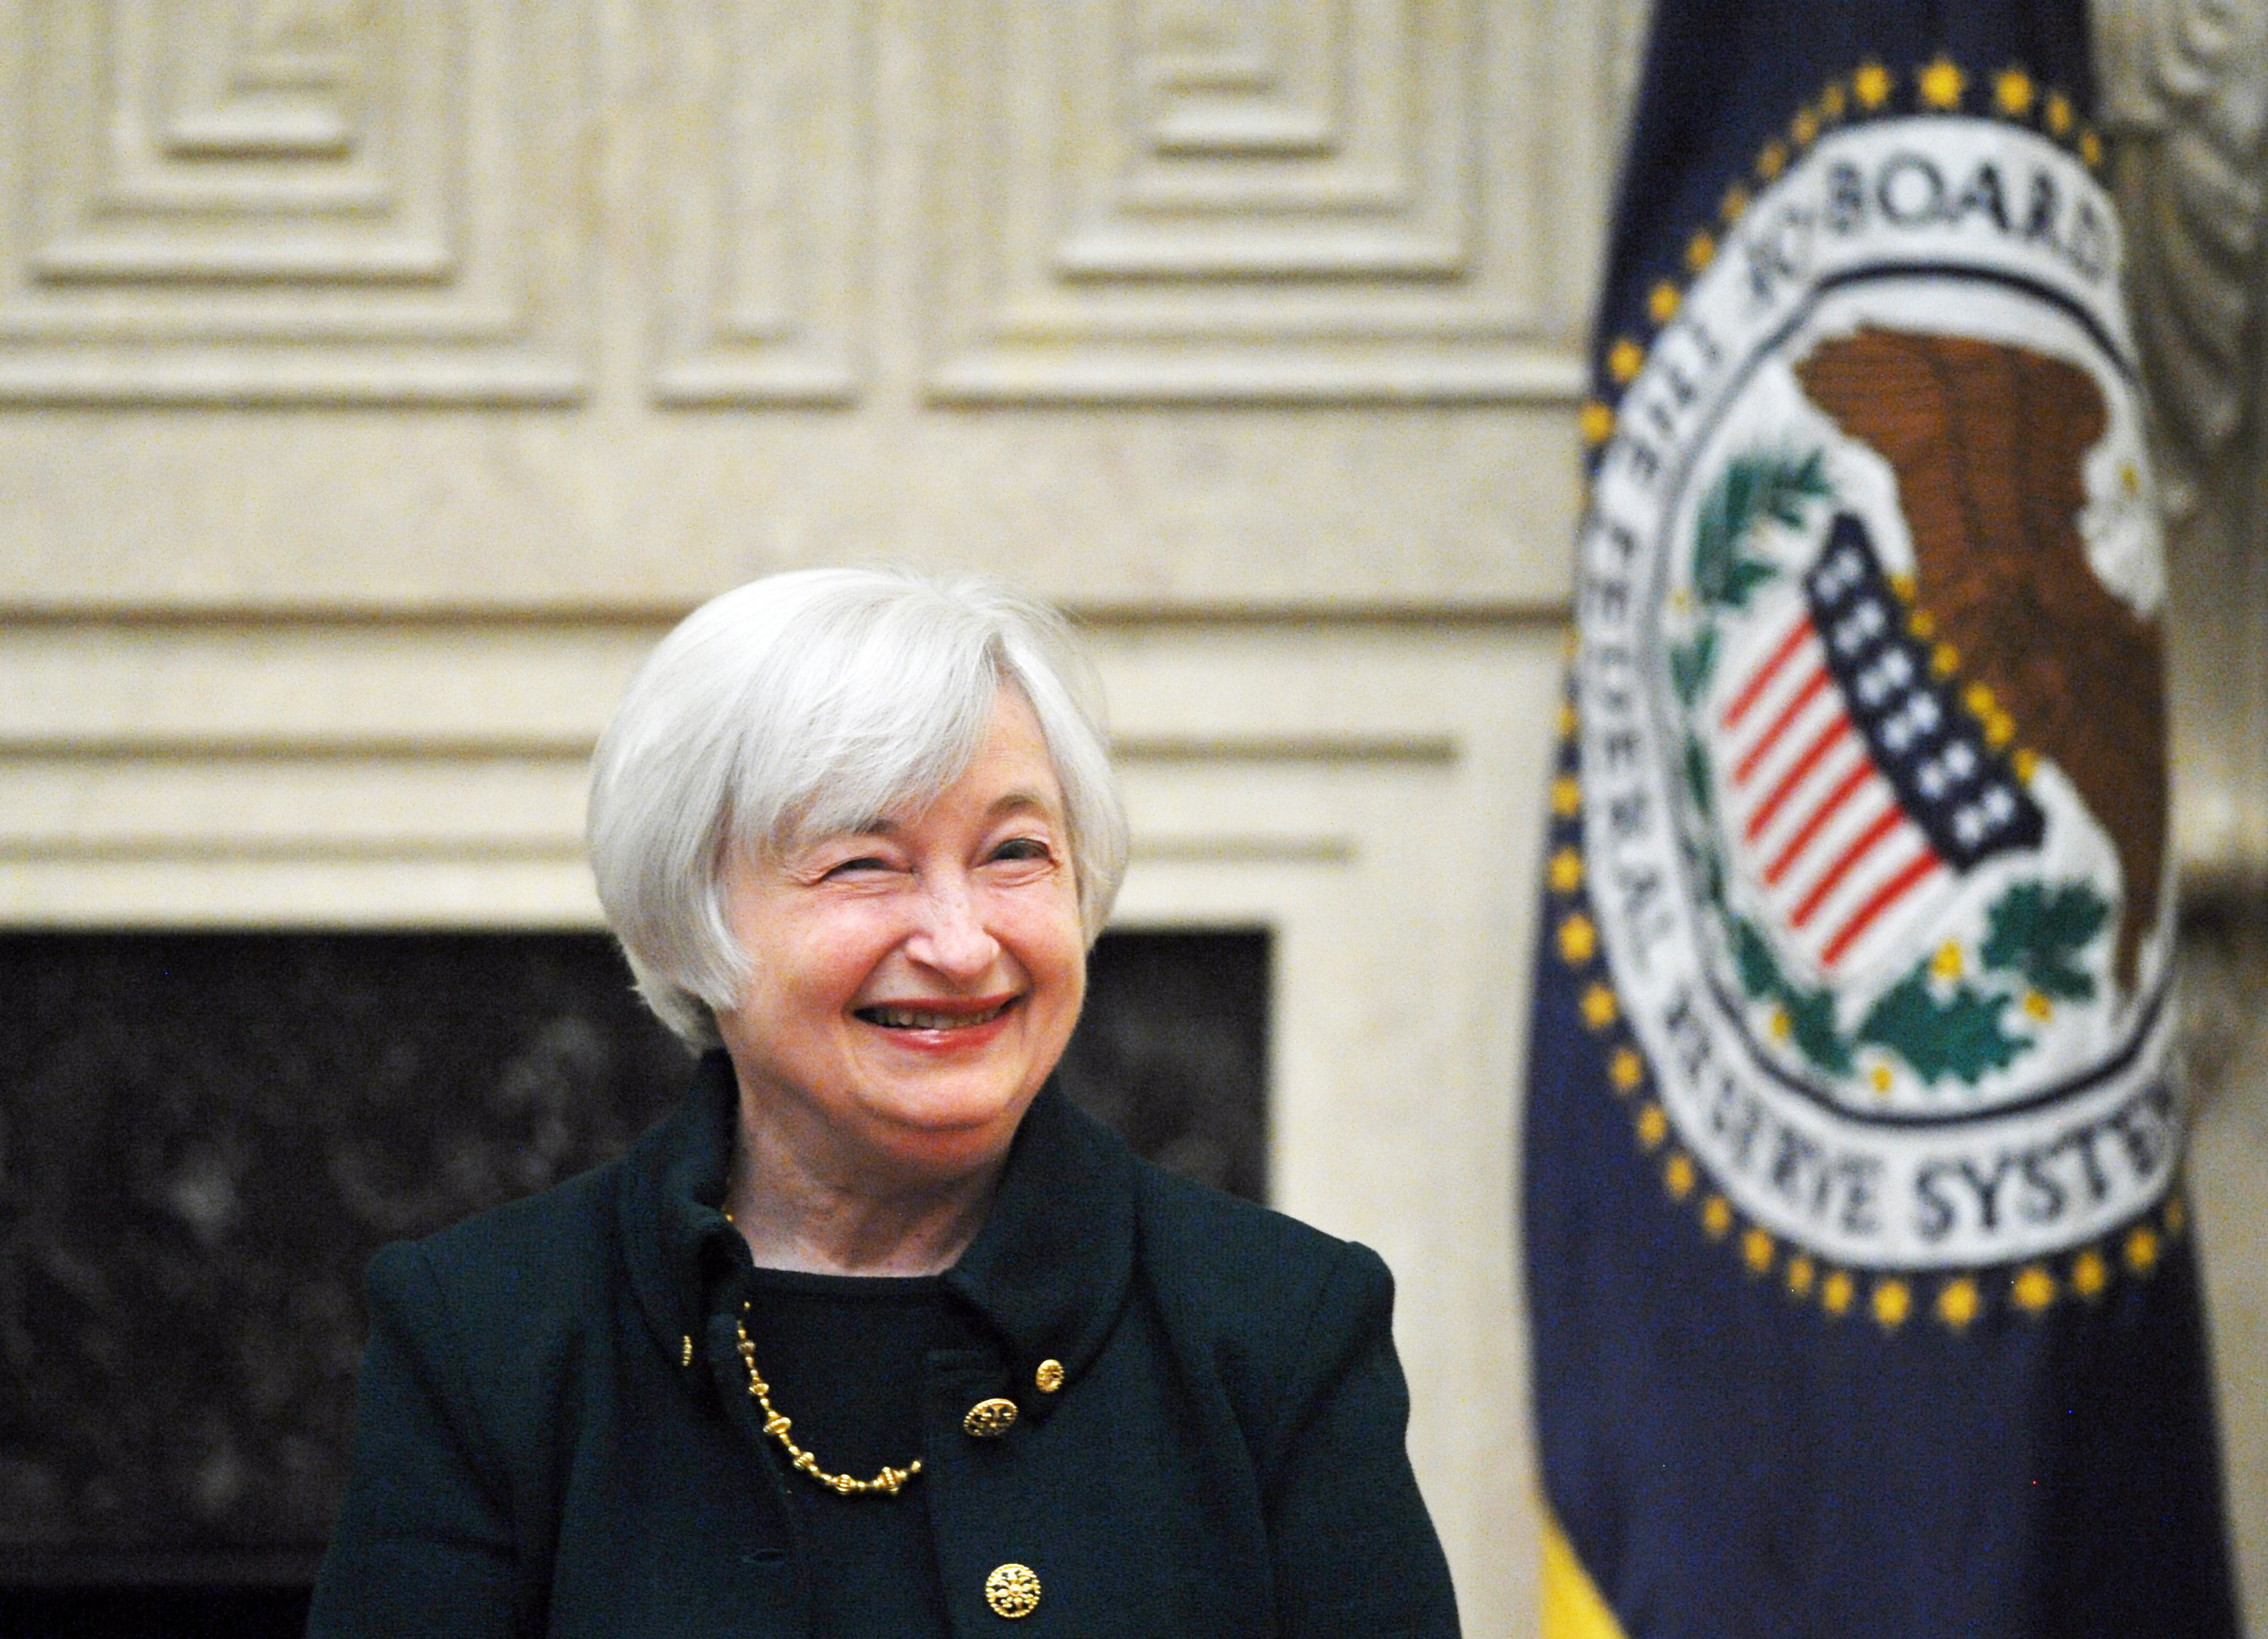 Janet Yellen smiles after taking the oath of office as Chairman of the Board of Governors of the Federal Reserve System February 3, 2014 at the Eccles Building in Washington, D.C.